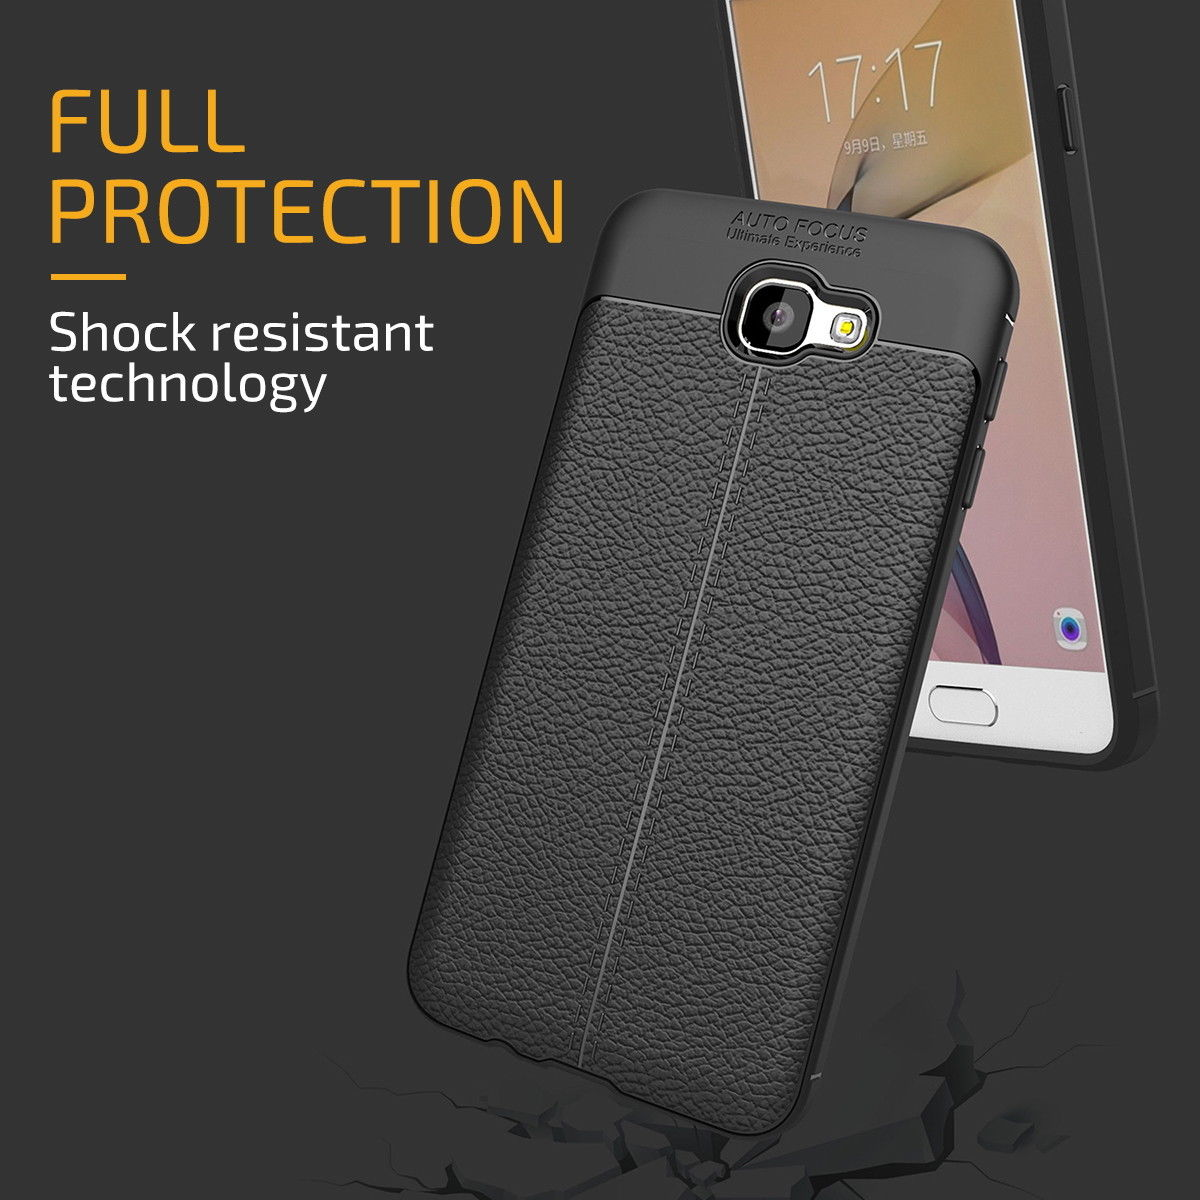 PU Leather Anti-Slip Shockproof Case Protective Cover For Galaxy J3 2016